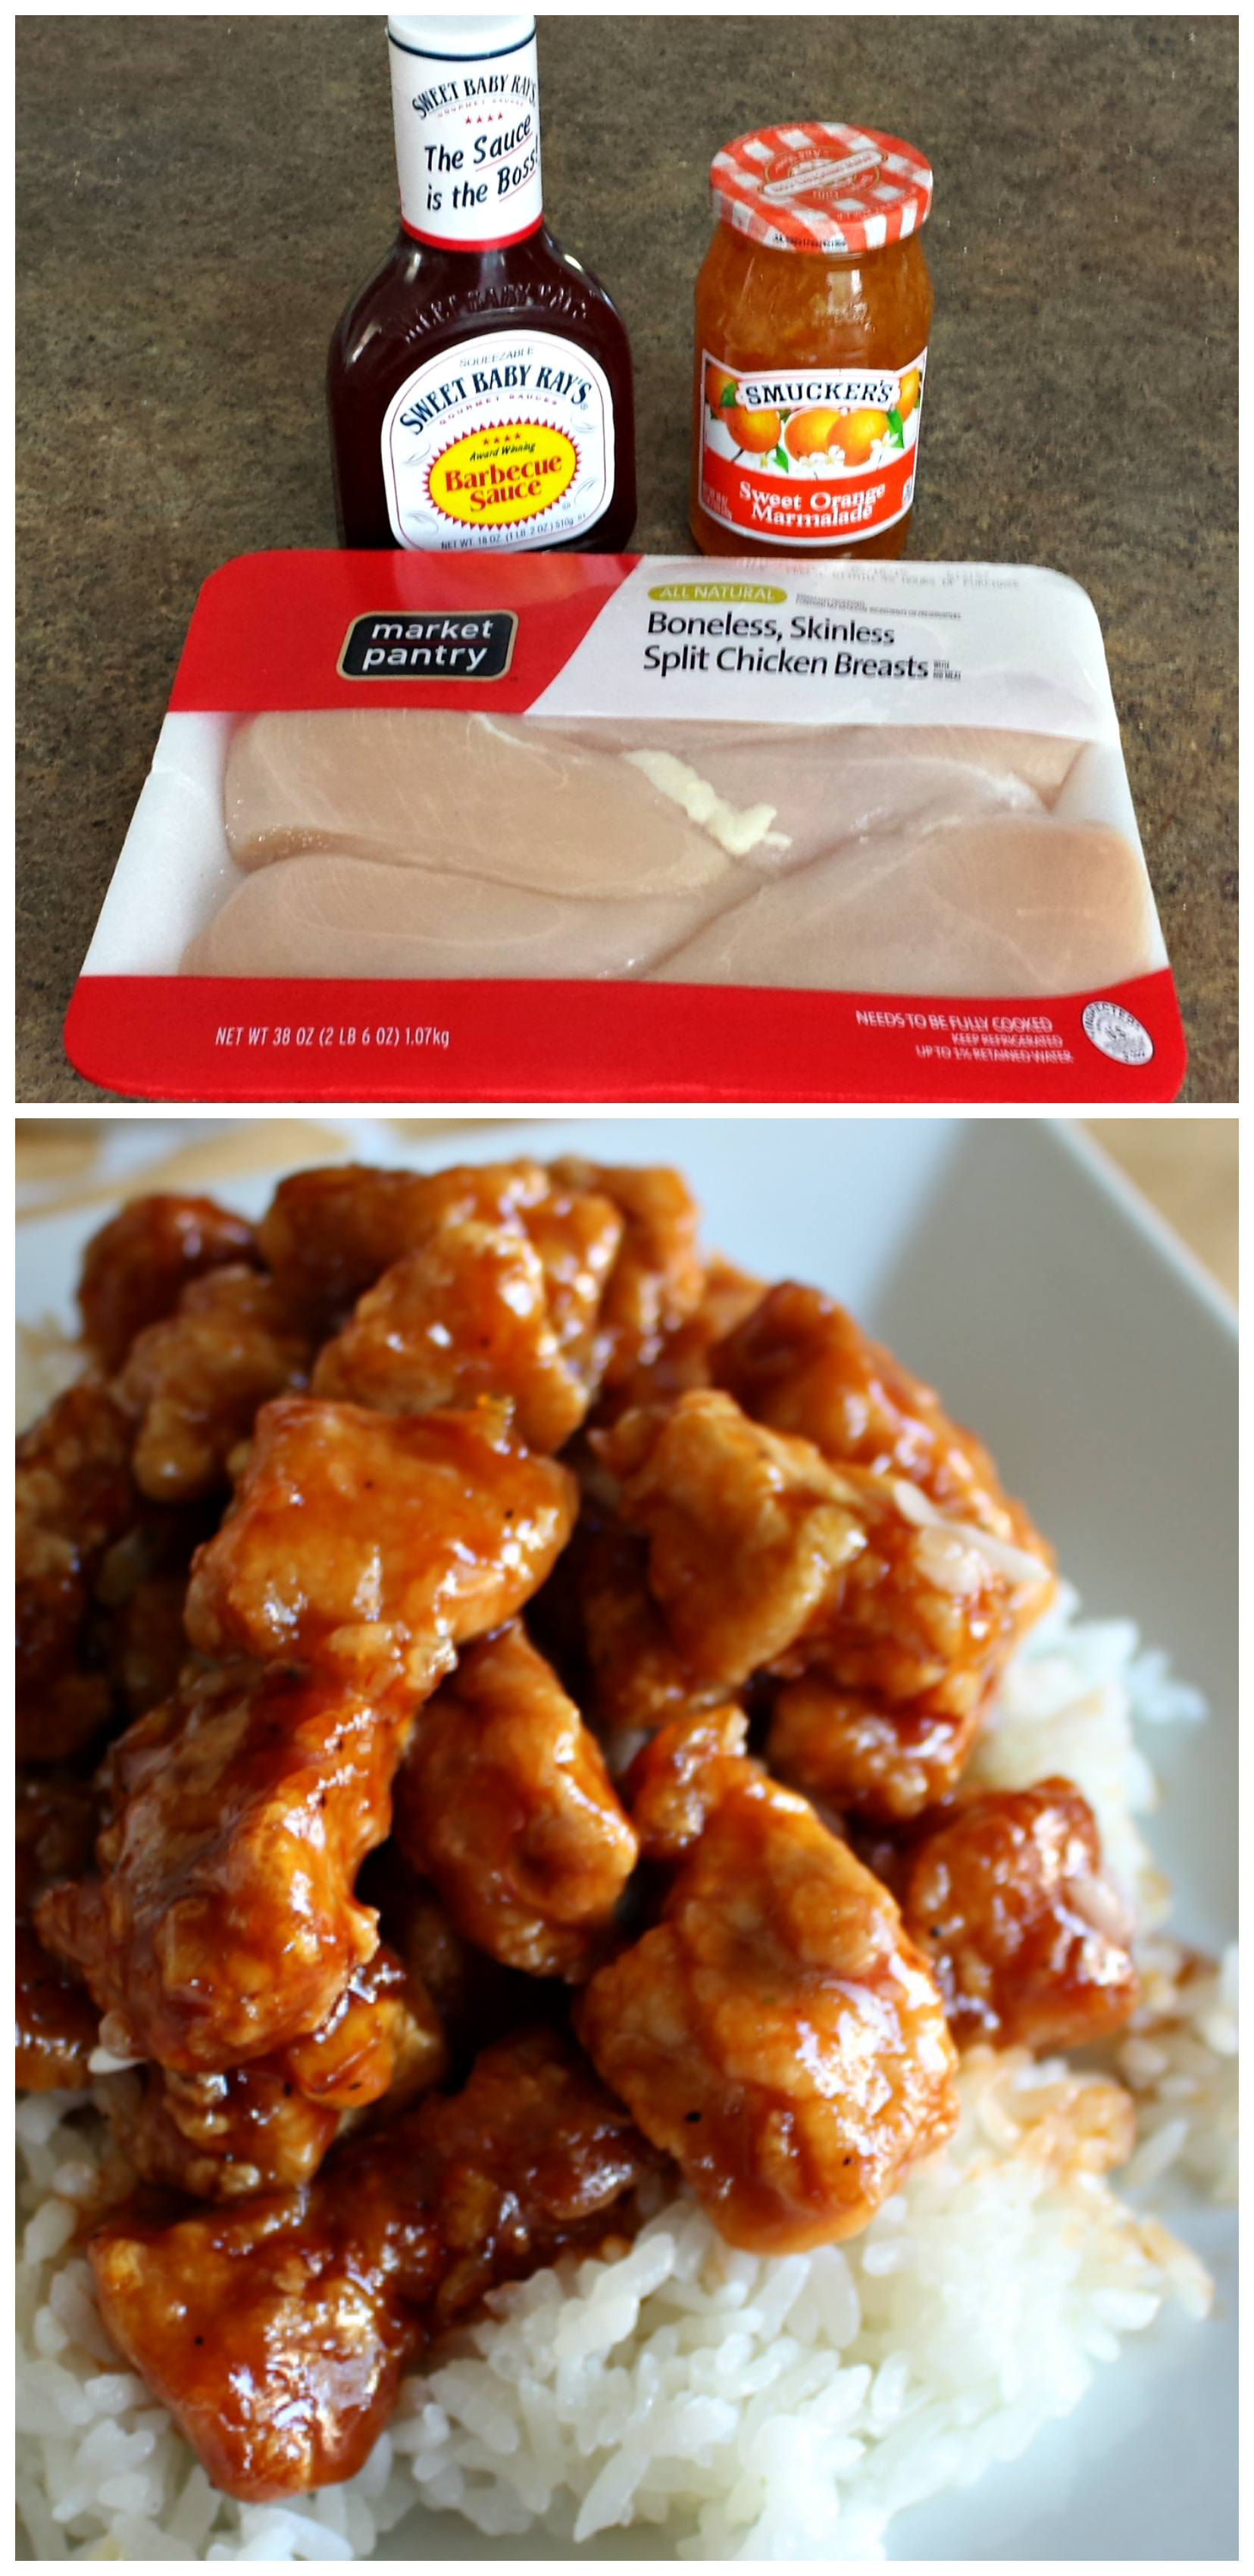 Yummm this orange chicken recipe is the best you only need 3 here is my favorite orange chicken recipe that uses sweet orange marmalade soy sauce and bbq sauce better than chinese takeout forumfinder Gallery